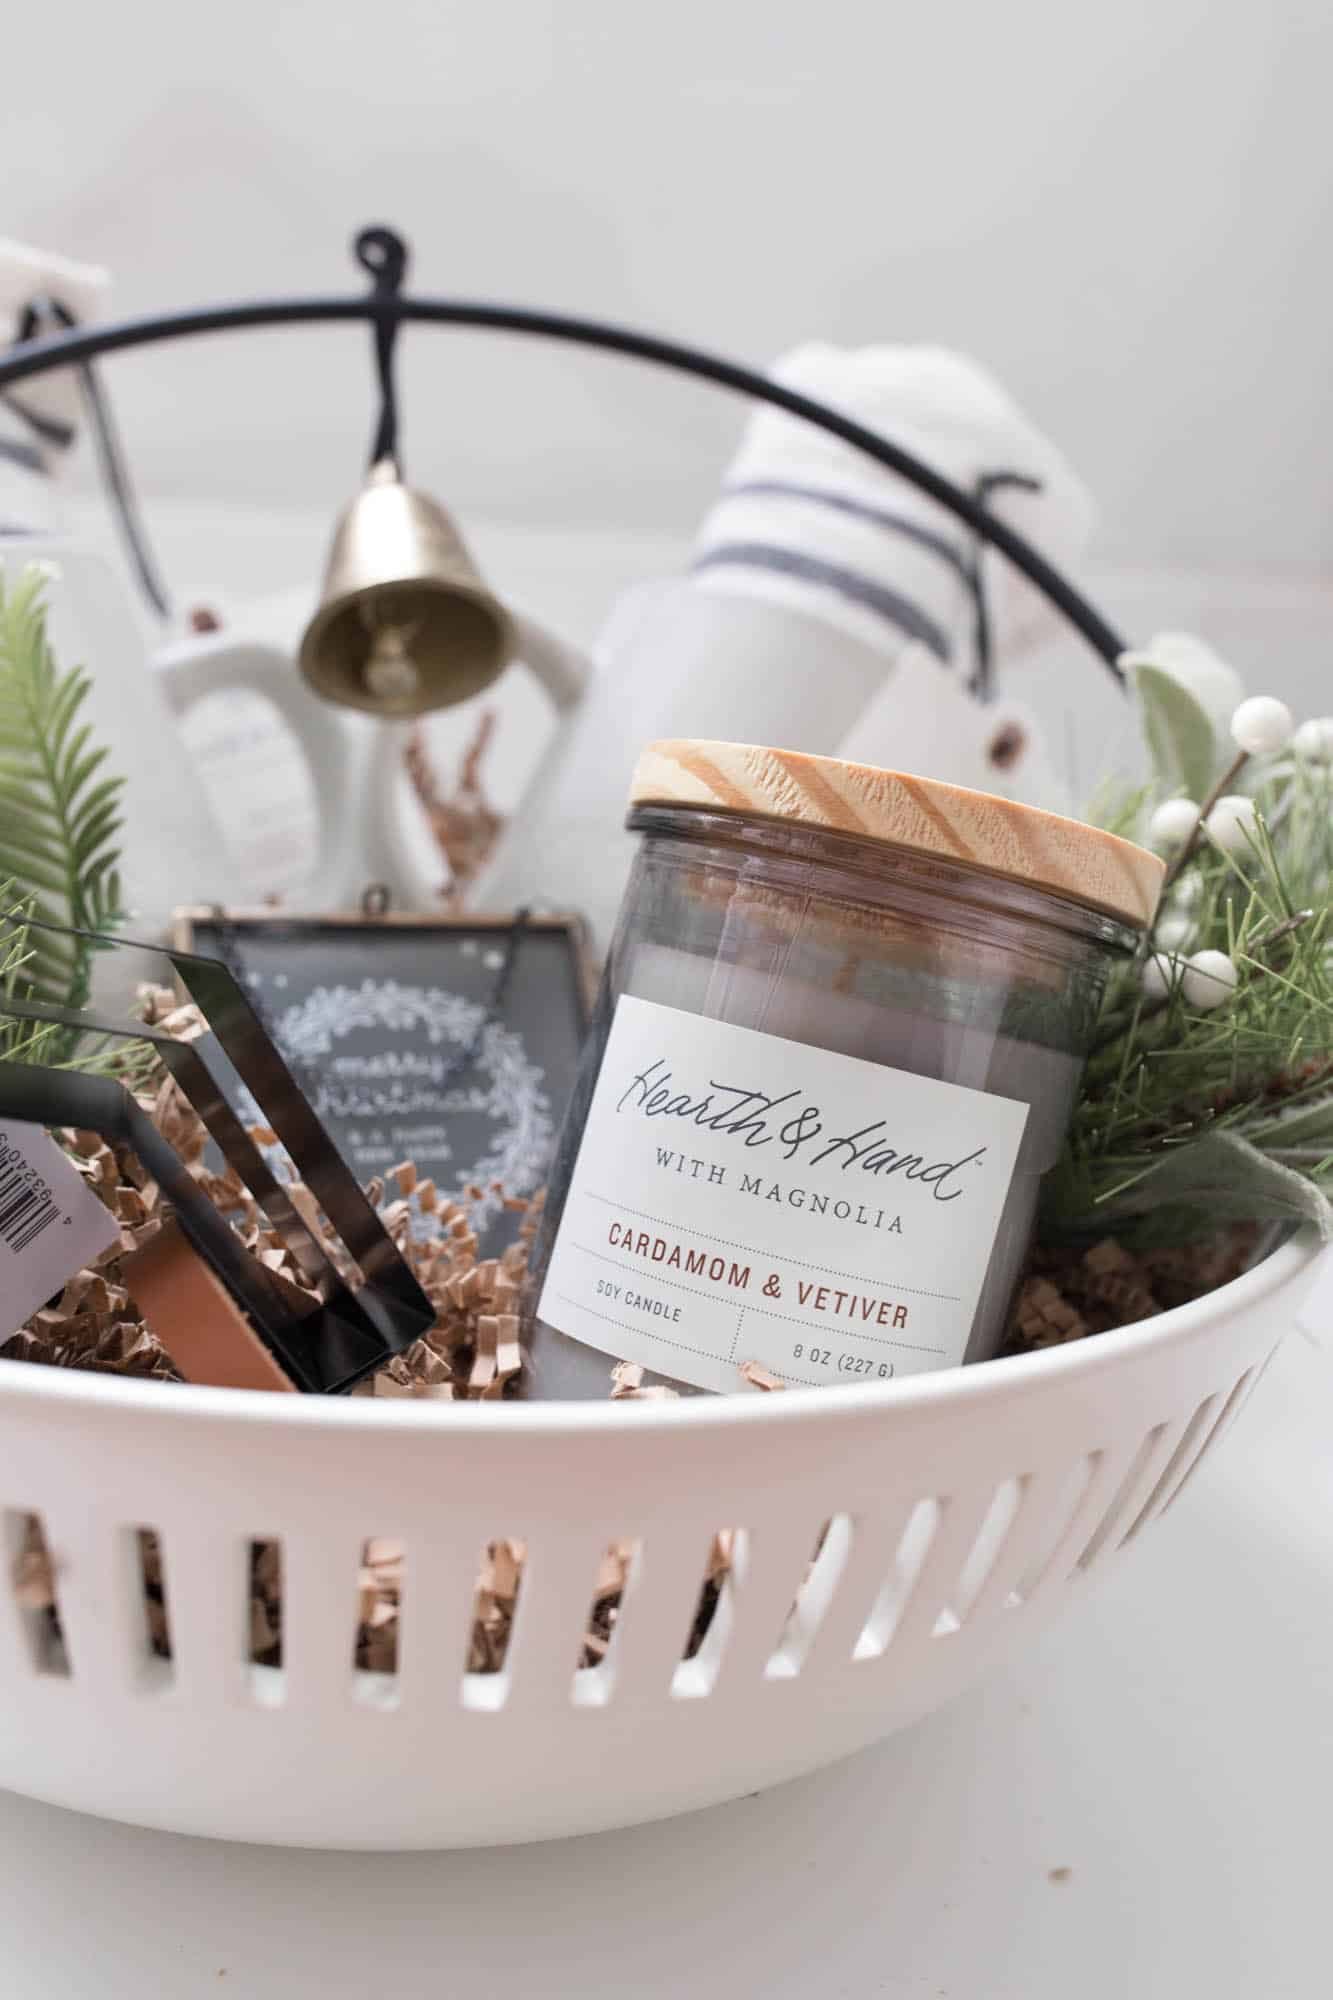 Hearth and Hand by Magnolia Cardamom and Vetiver Soy Candle Gift Basket